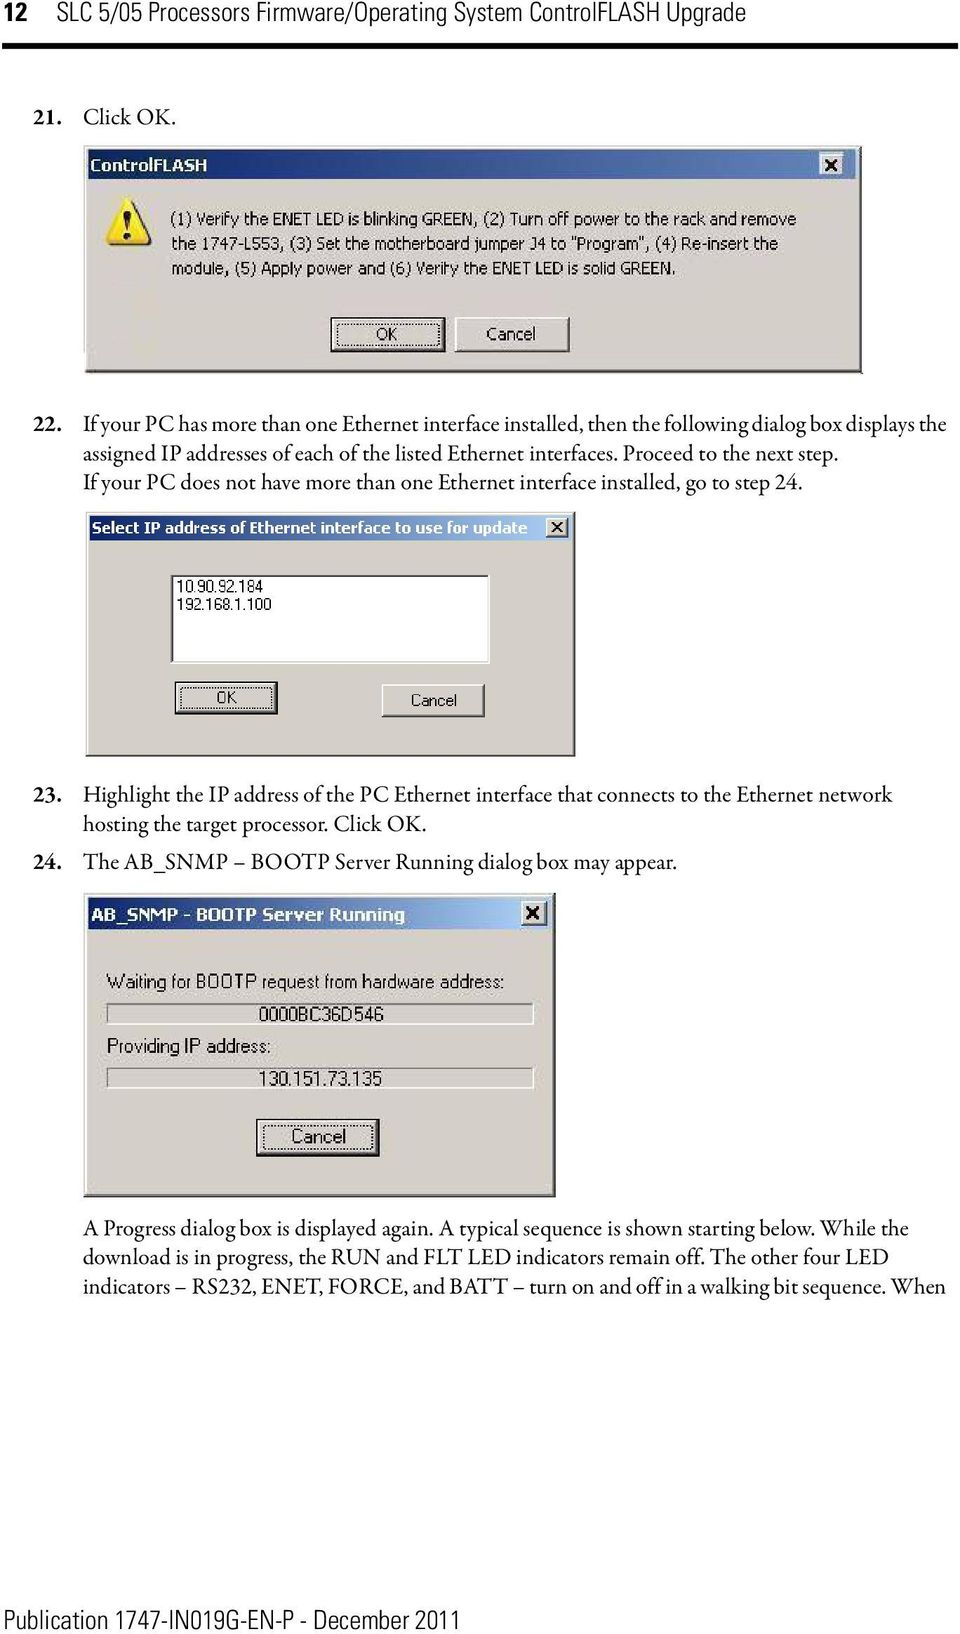 If your PC does not have more than one Ethernet interface installed, go to step 24. 23.